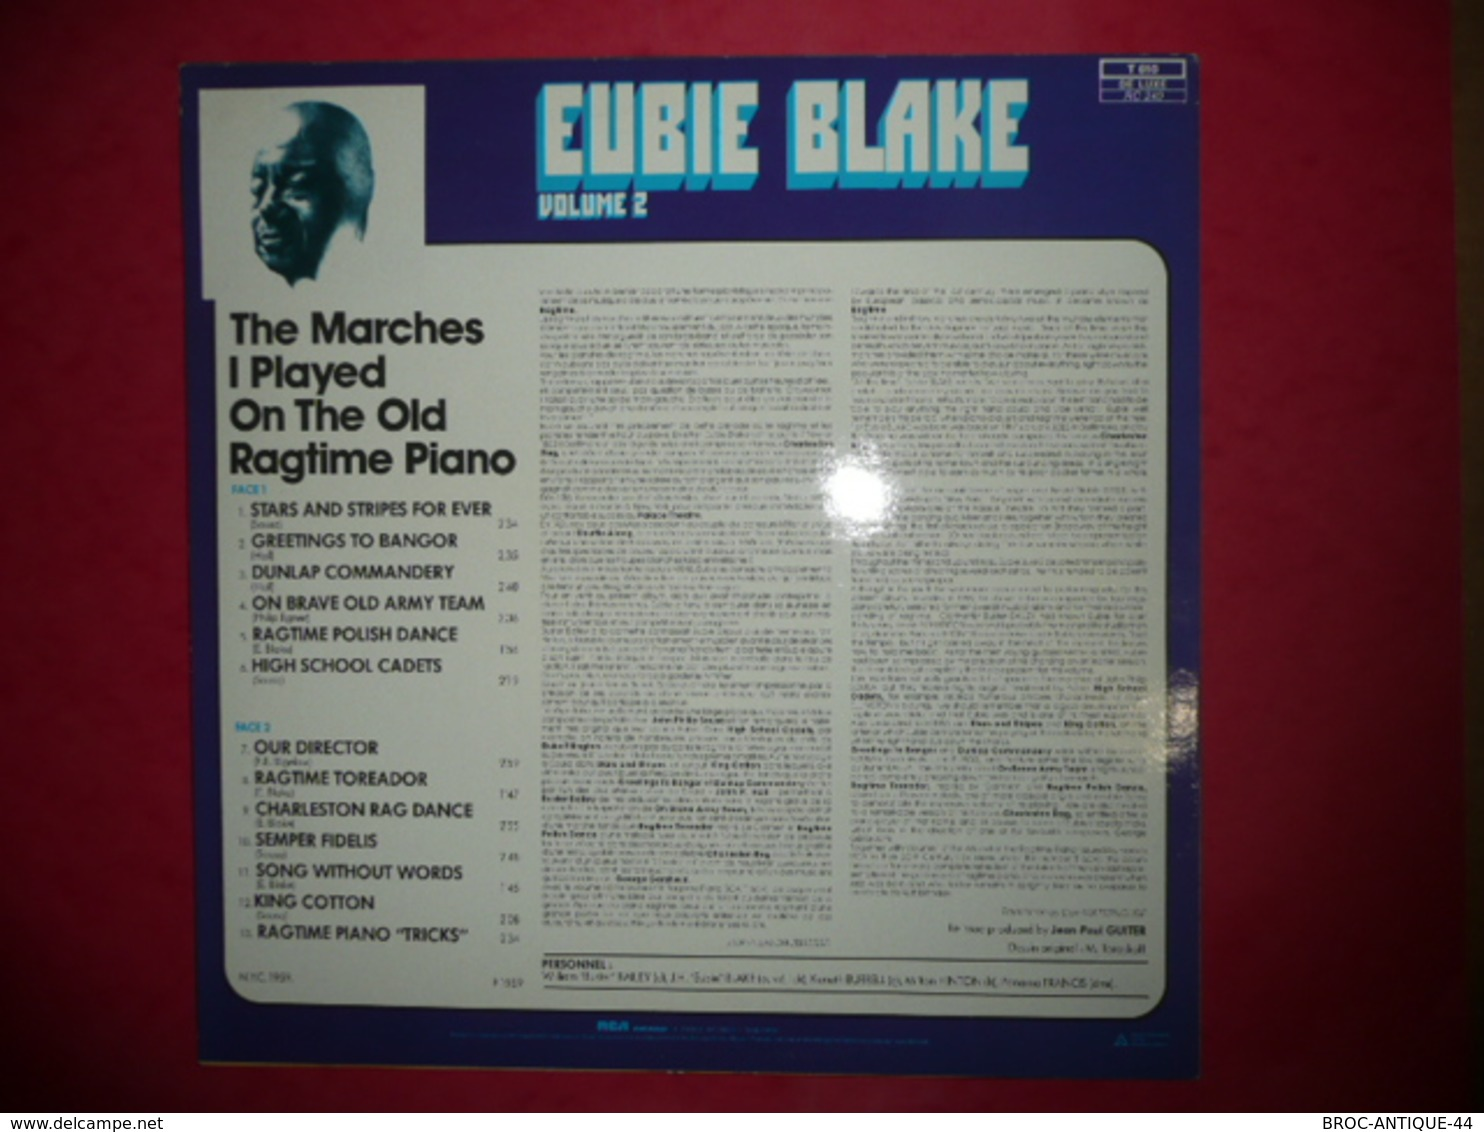 LP33 N°815 - EUBIE BLAKE WITH ORCHESTRA - VOL.2 - COMPILATION 13 TITRES JAZZ BLUES RAGTIME - Jazz